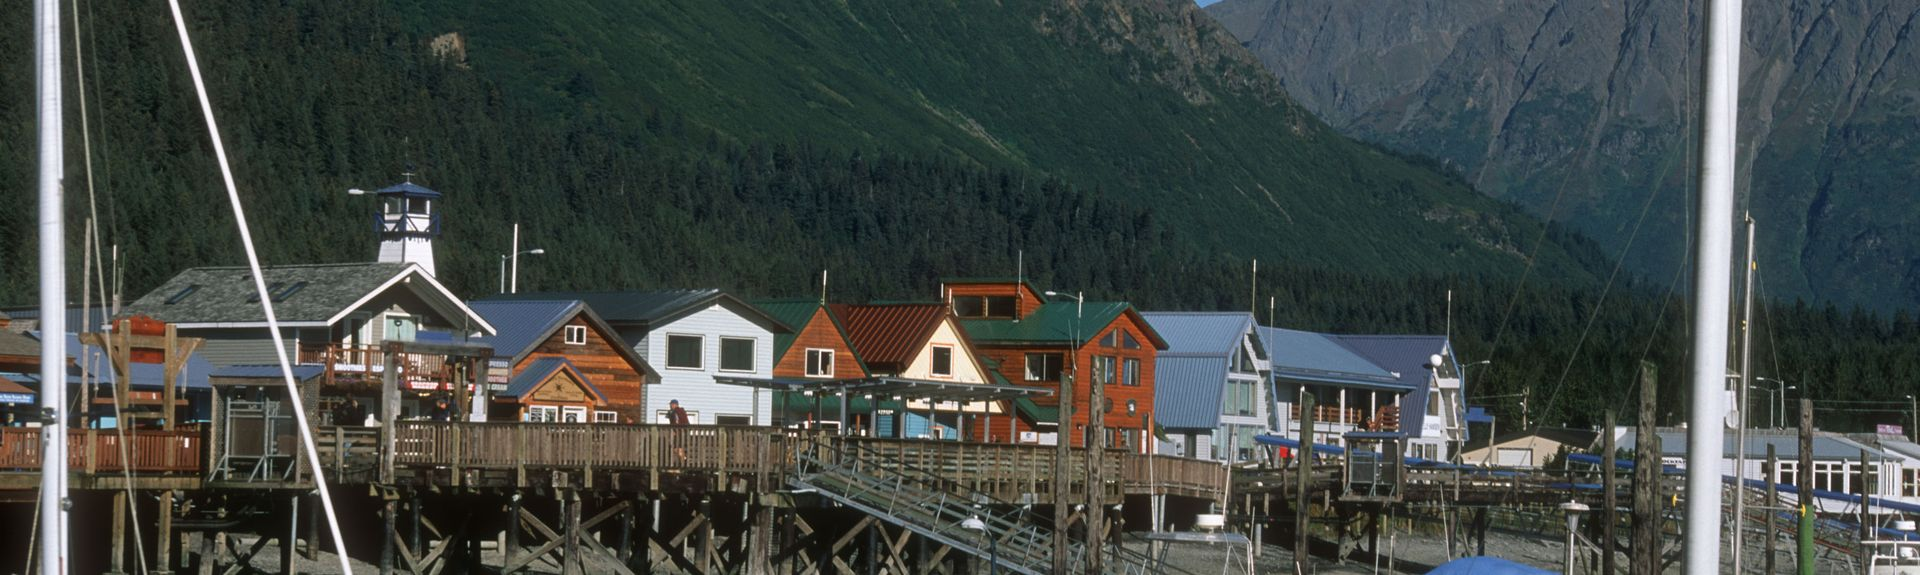 Seward, Alaska, United States of America